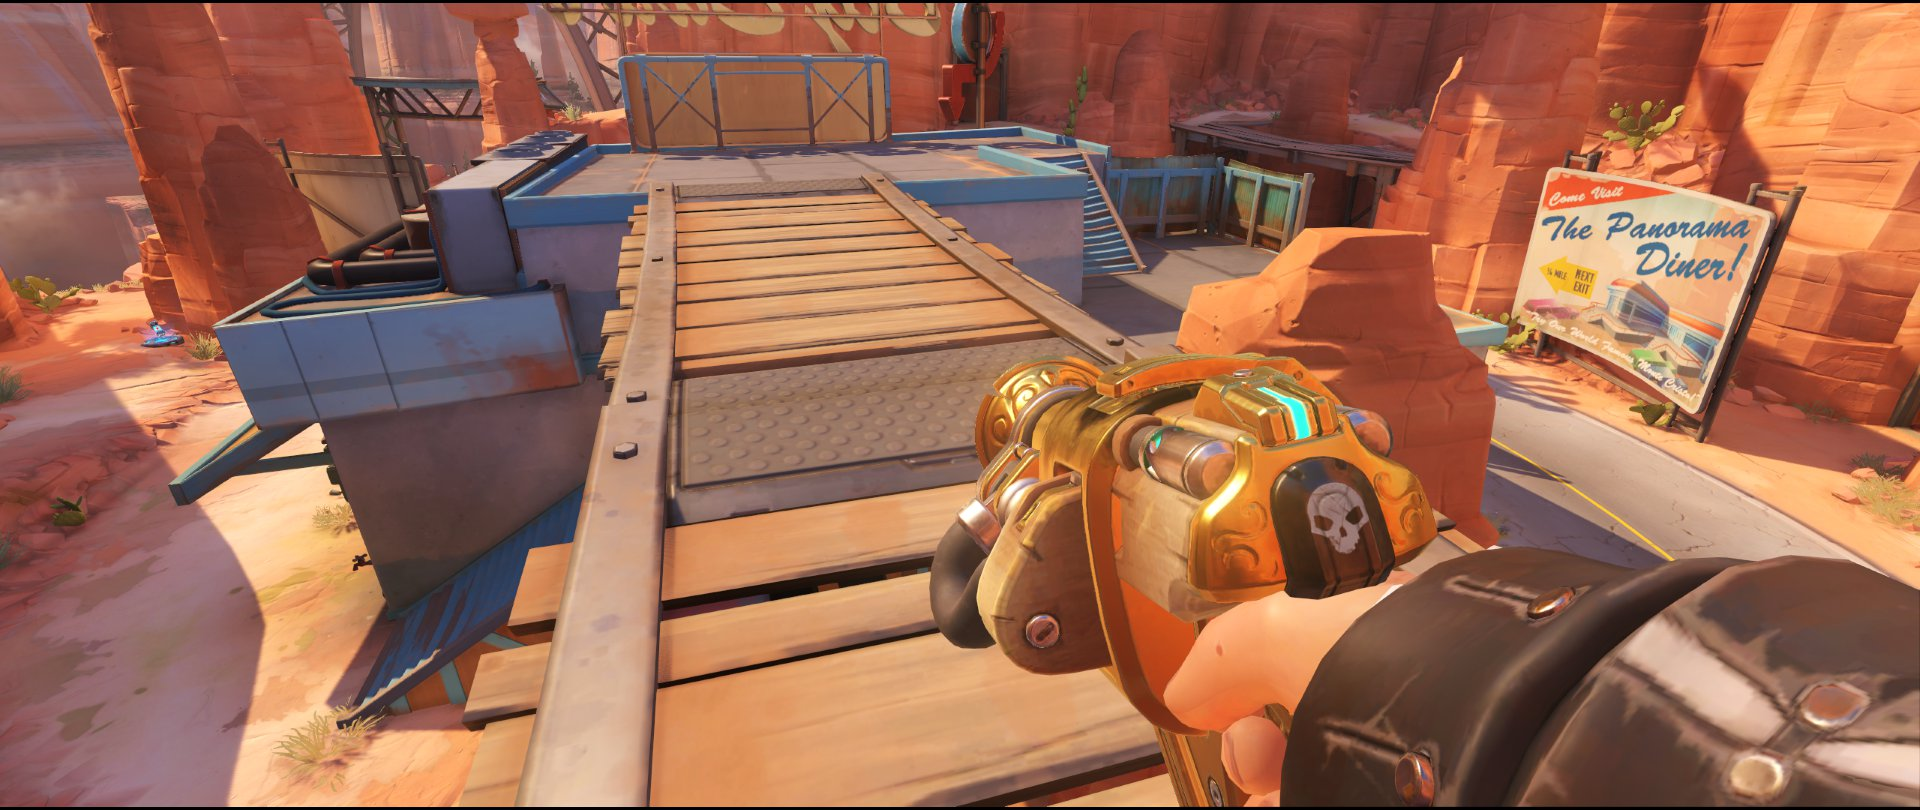 Gas station high ground turret placement Torbjorn Route 66 Overwatch